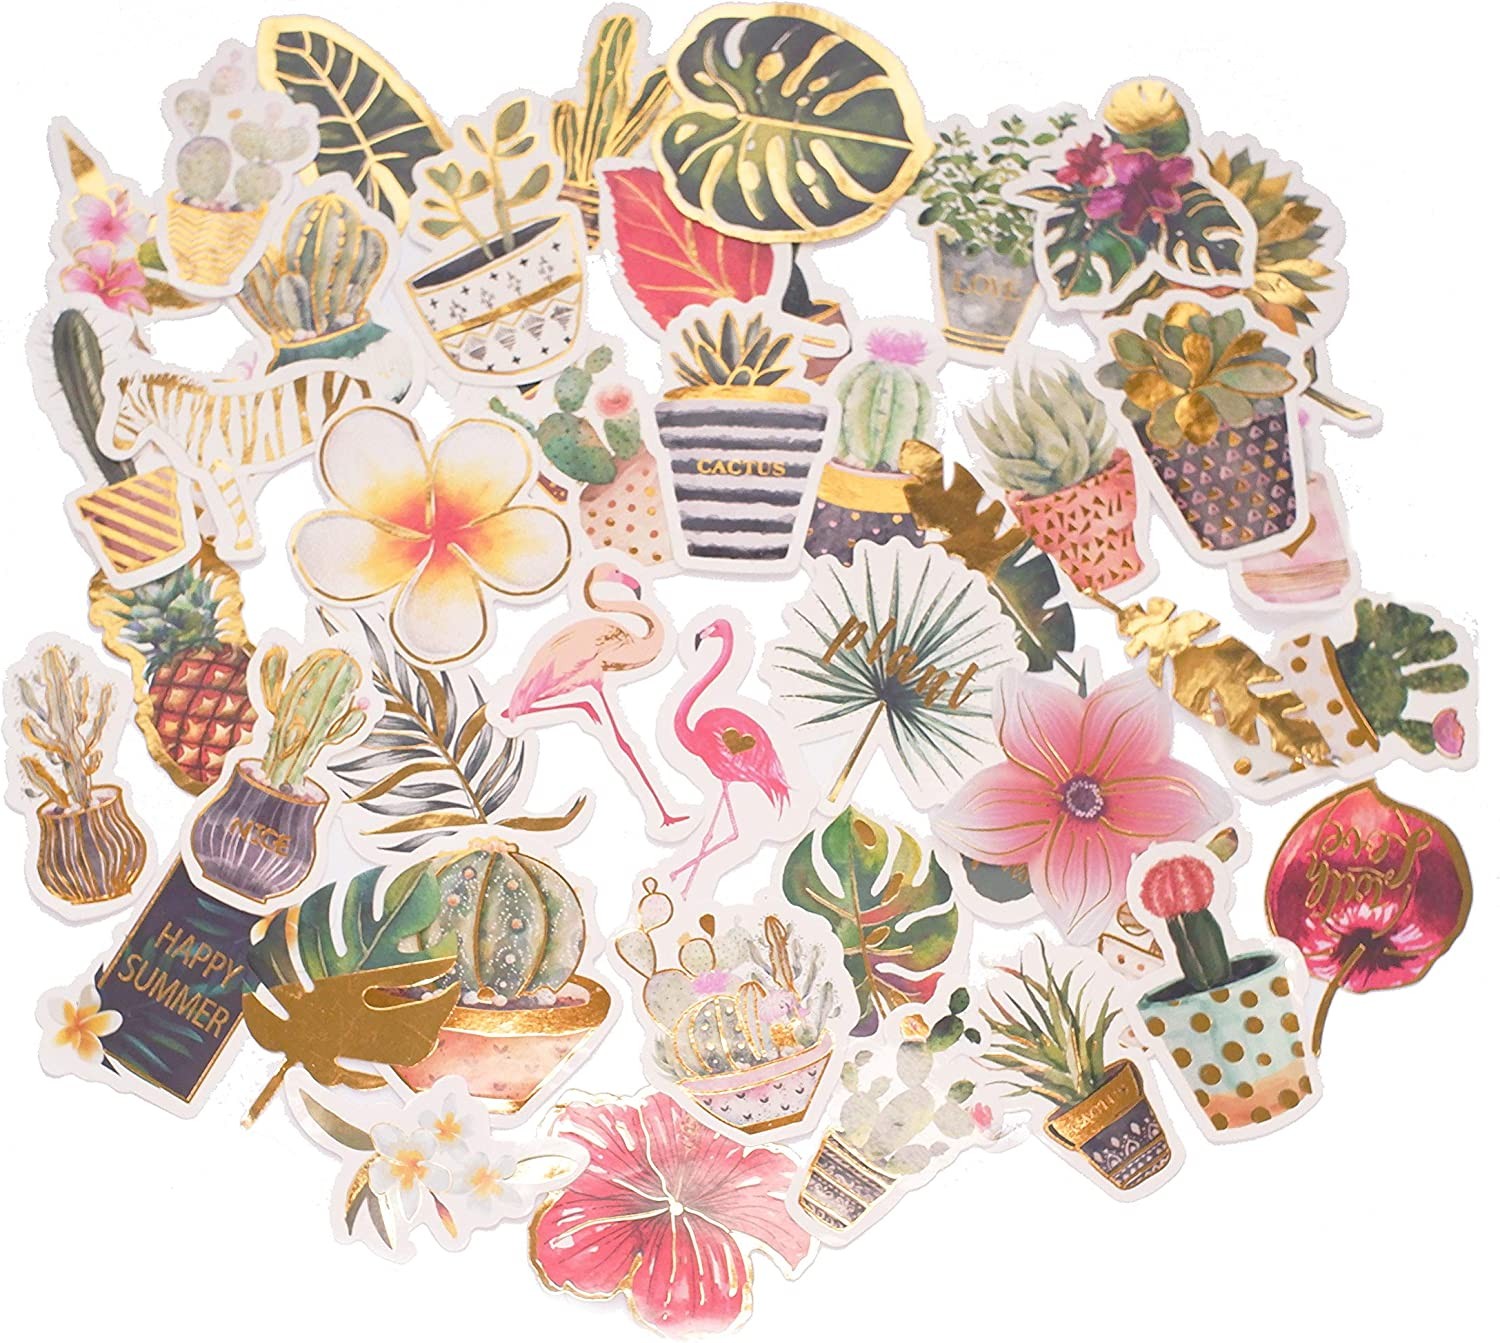 STICON Cute Tropical Rain Forest, Succulent Plants and Cactus, Flamingo Stickers for Laptop, Scrapbook, Kid Craft (48 Pieces)